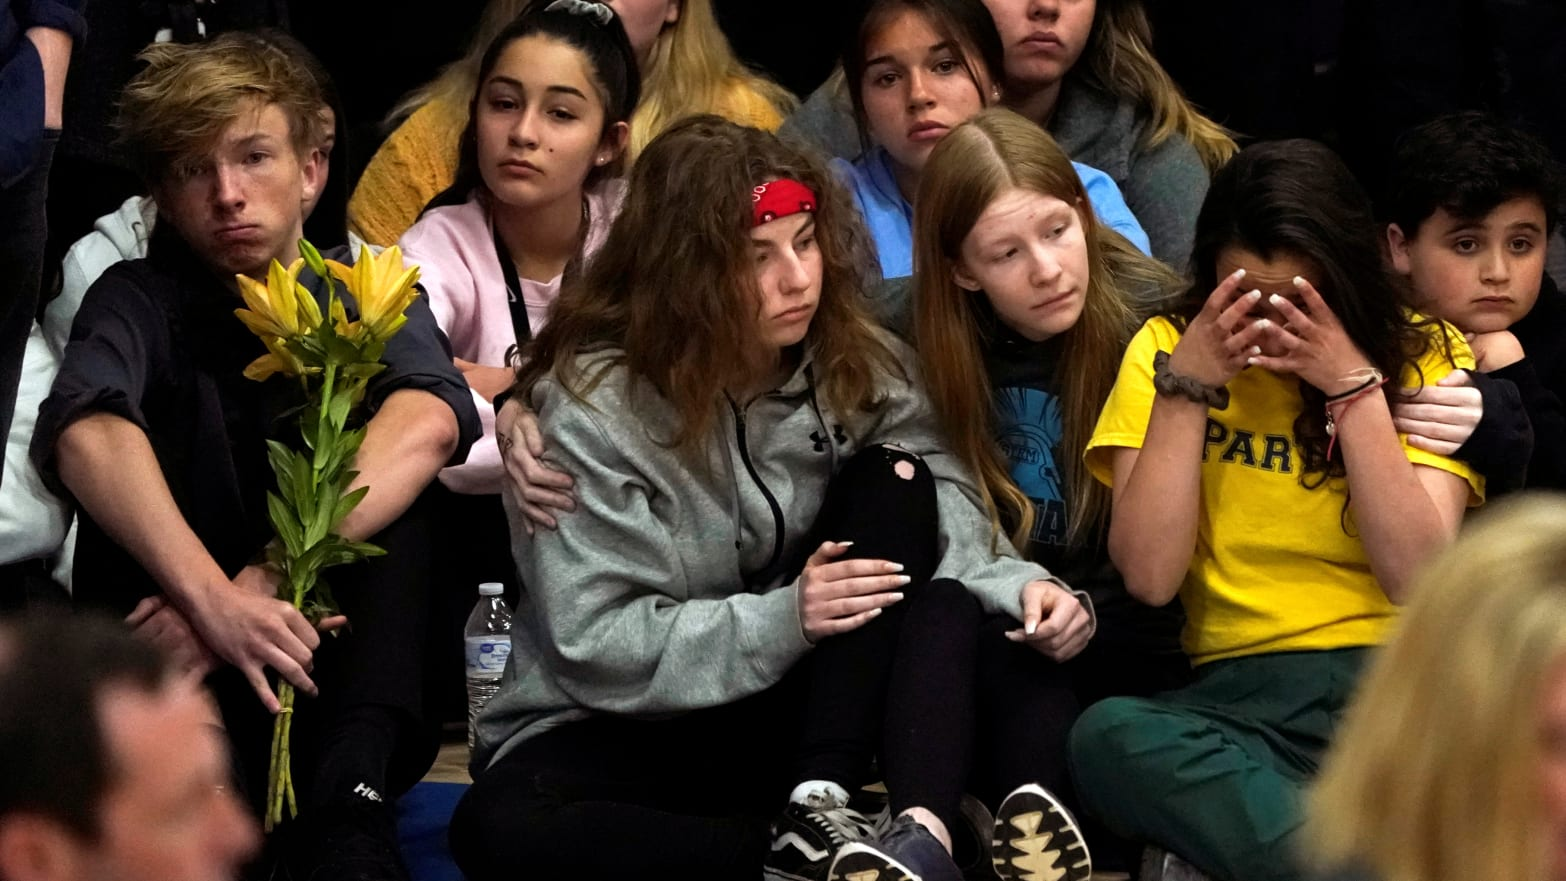 STEM School Shooting: Students Walk Out of Vigil Organized by Team Enough and Moms Demand Action